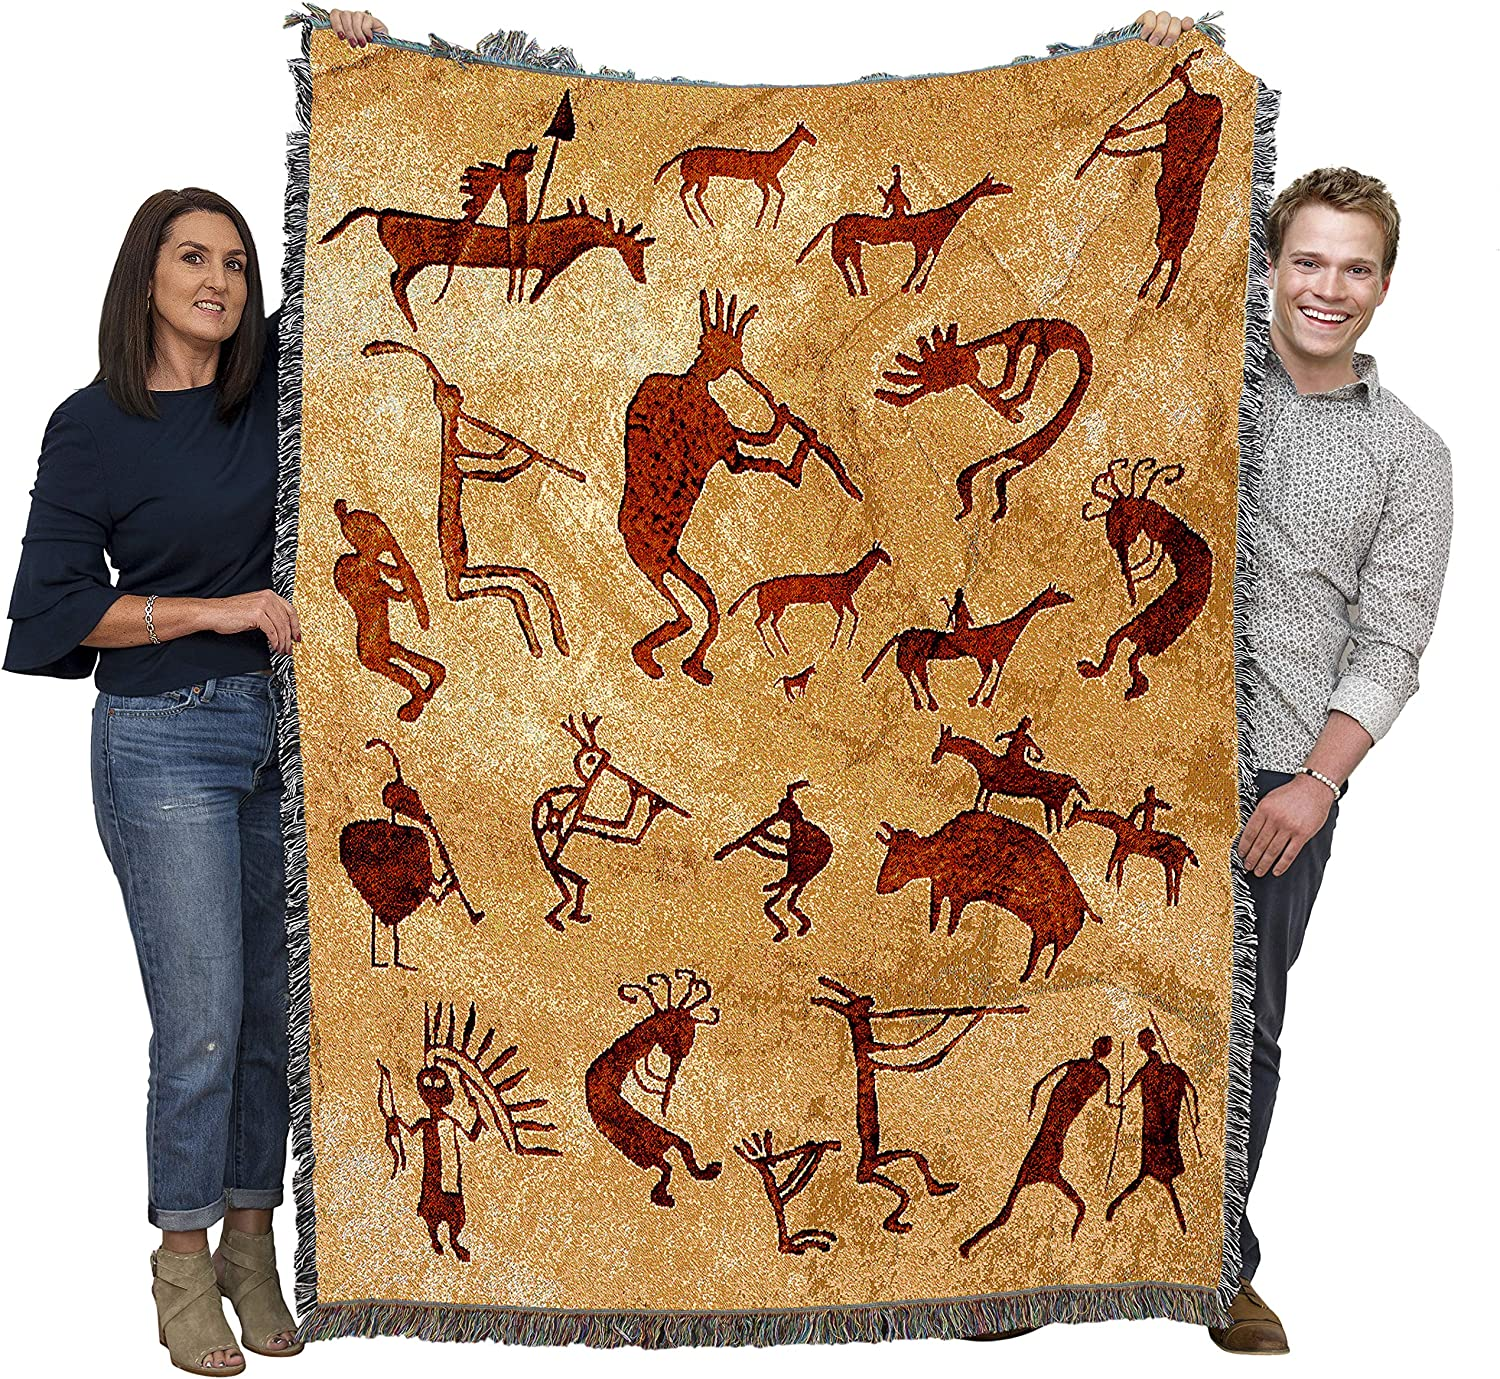 Pure Country Weavers Kokopelli Petroglyphs - Southwest Cave Rock Art Blanket Throw Woven from Cotton - Made in The USA (72x54)